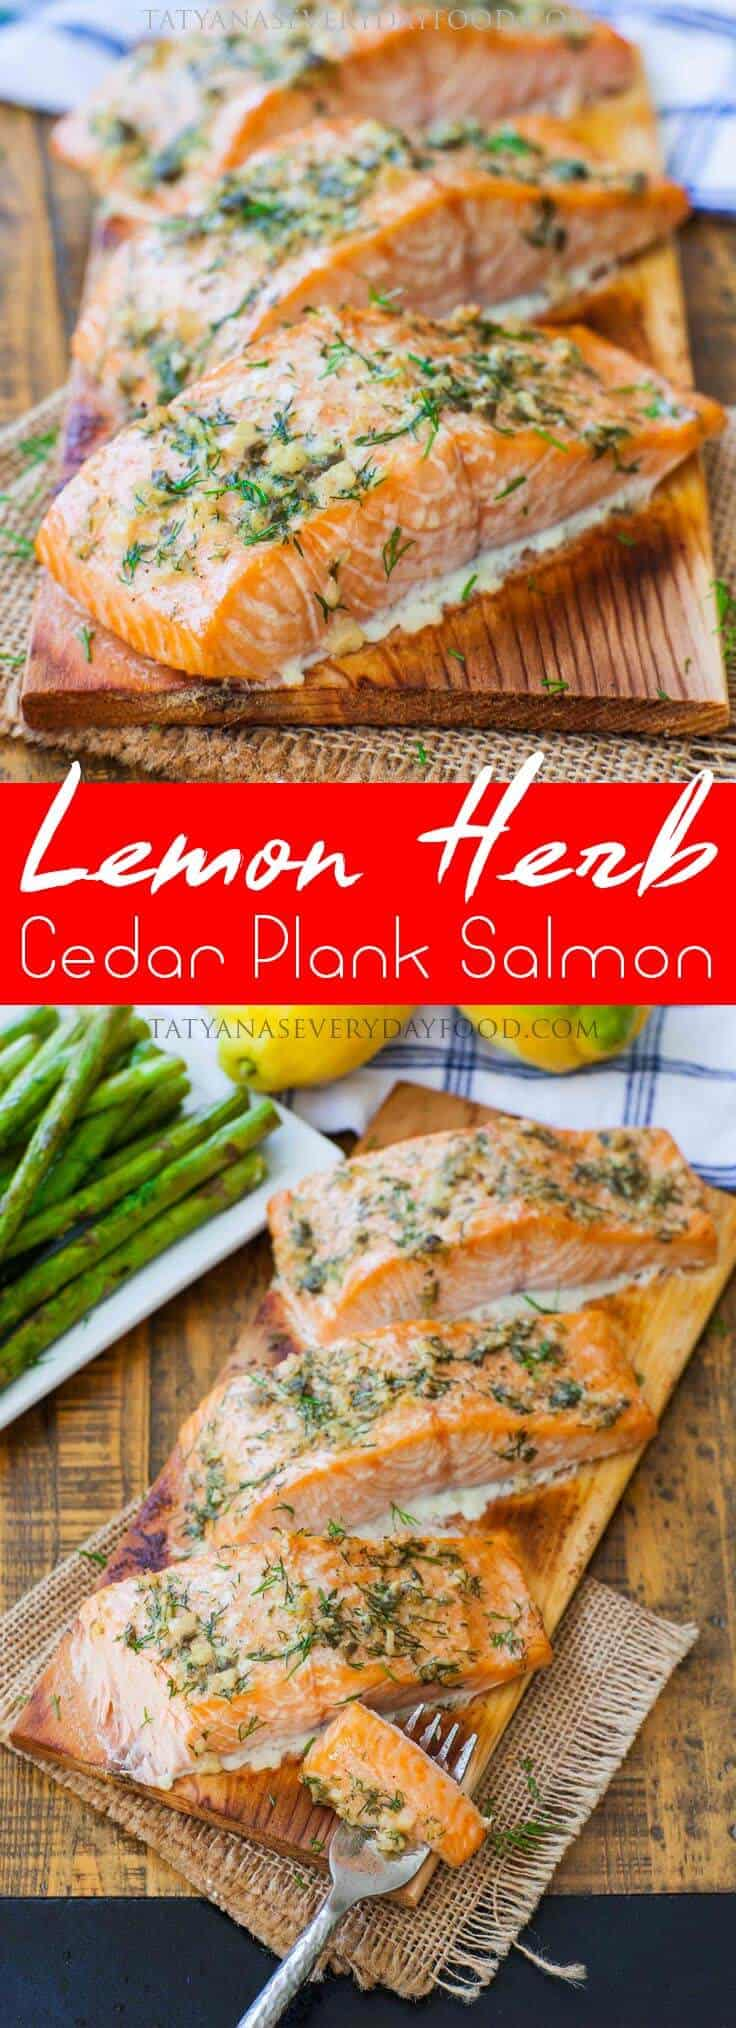 Lemon Herb Cedar Plank Salmon Recipe with video